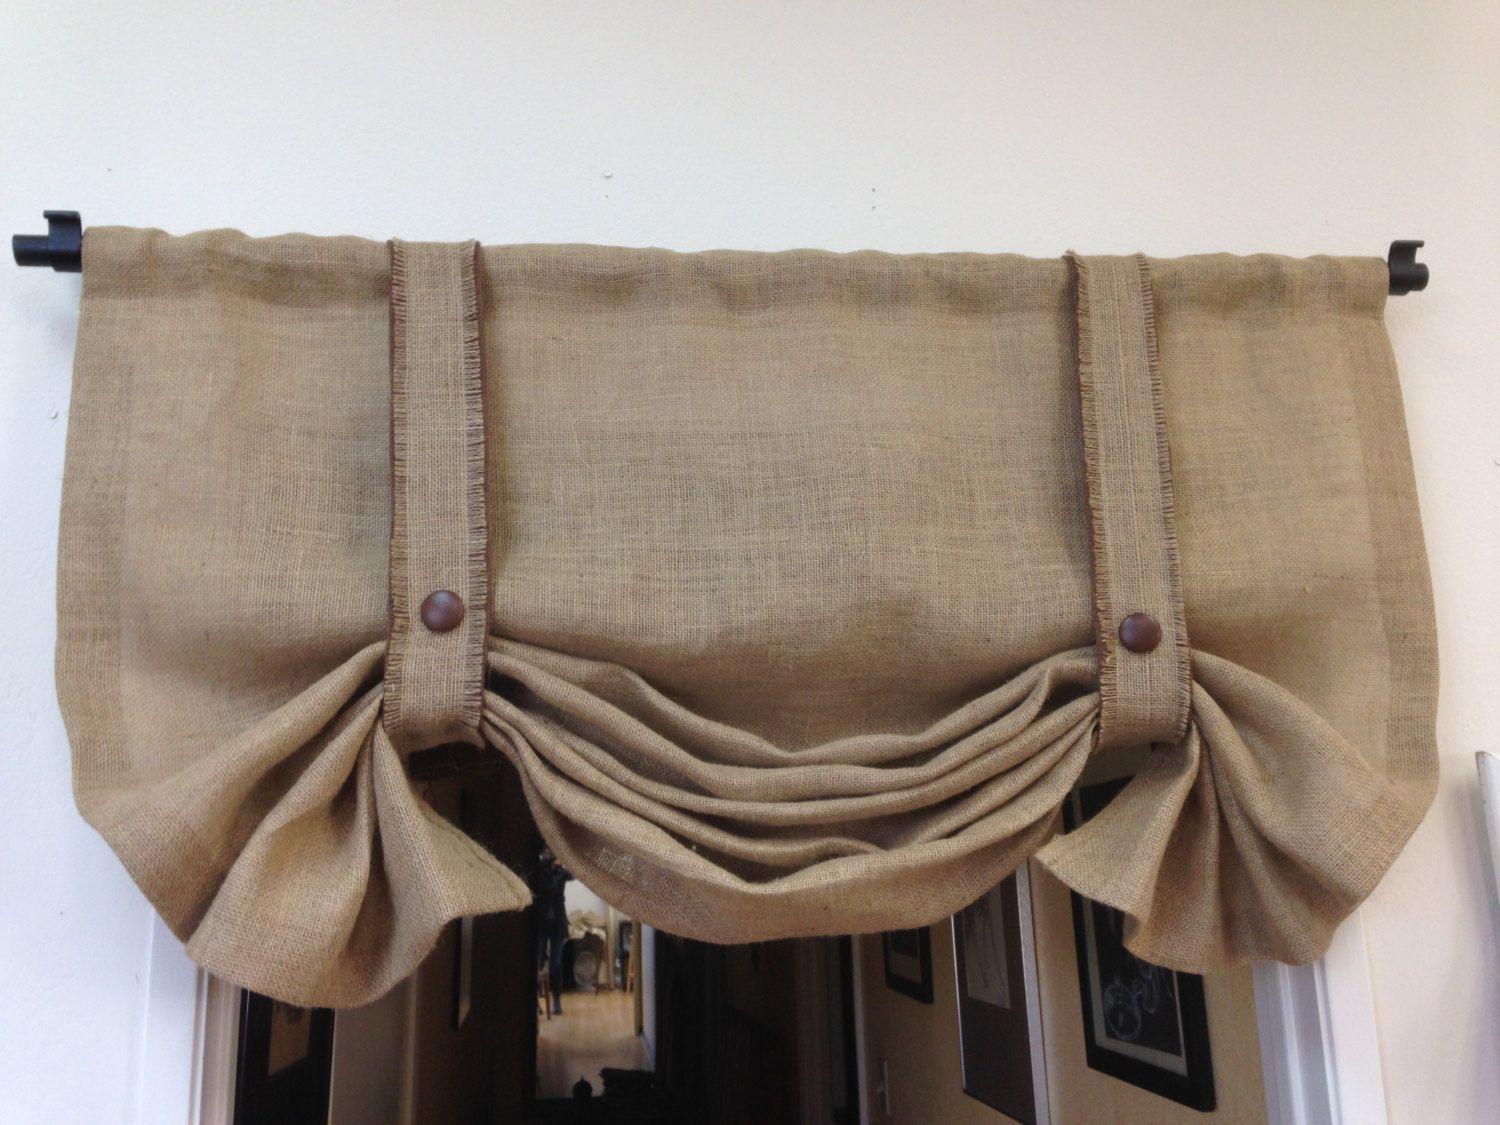 Burlap valance London shade Tie up shade Pull up shade Country